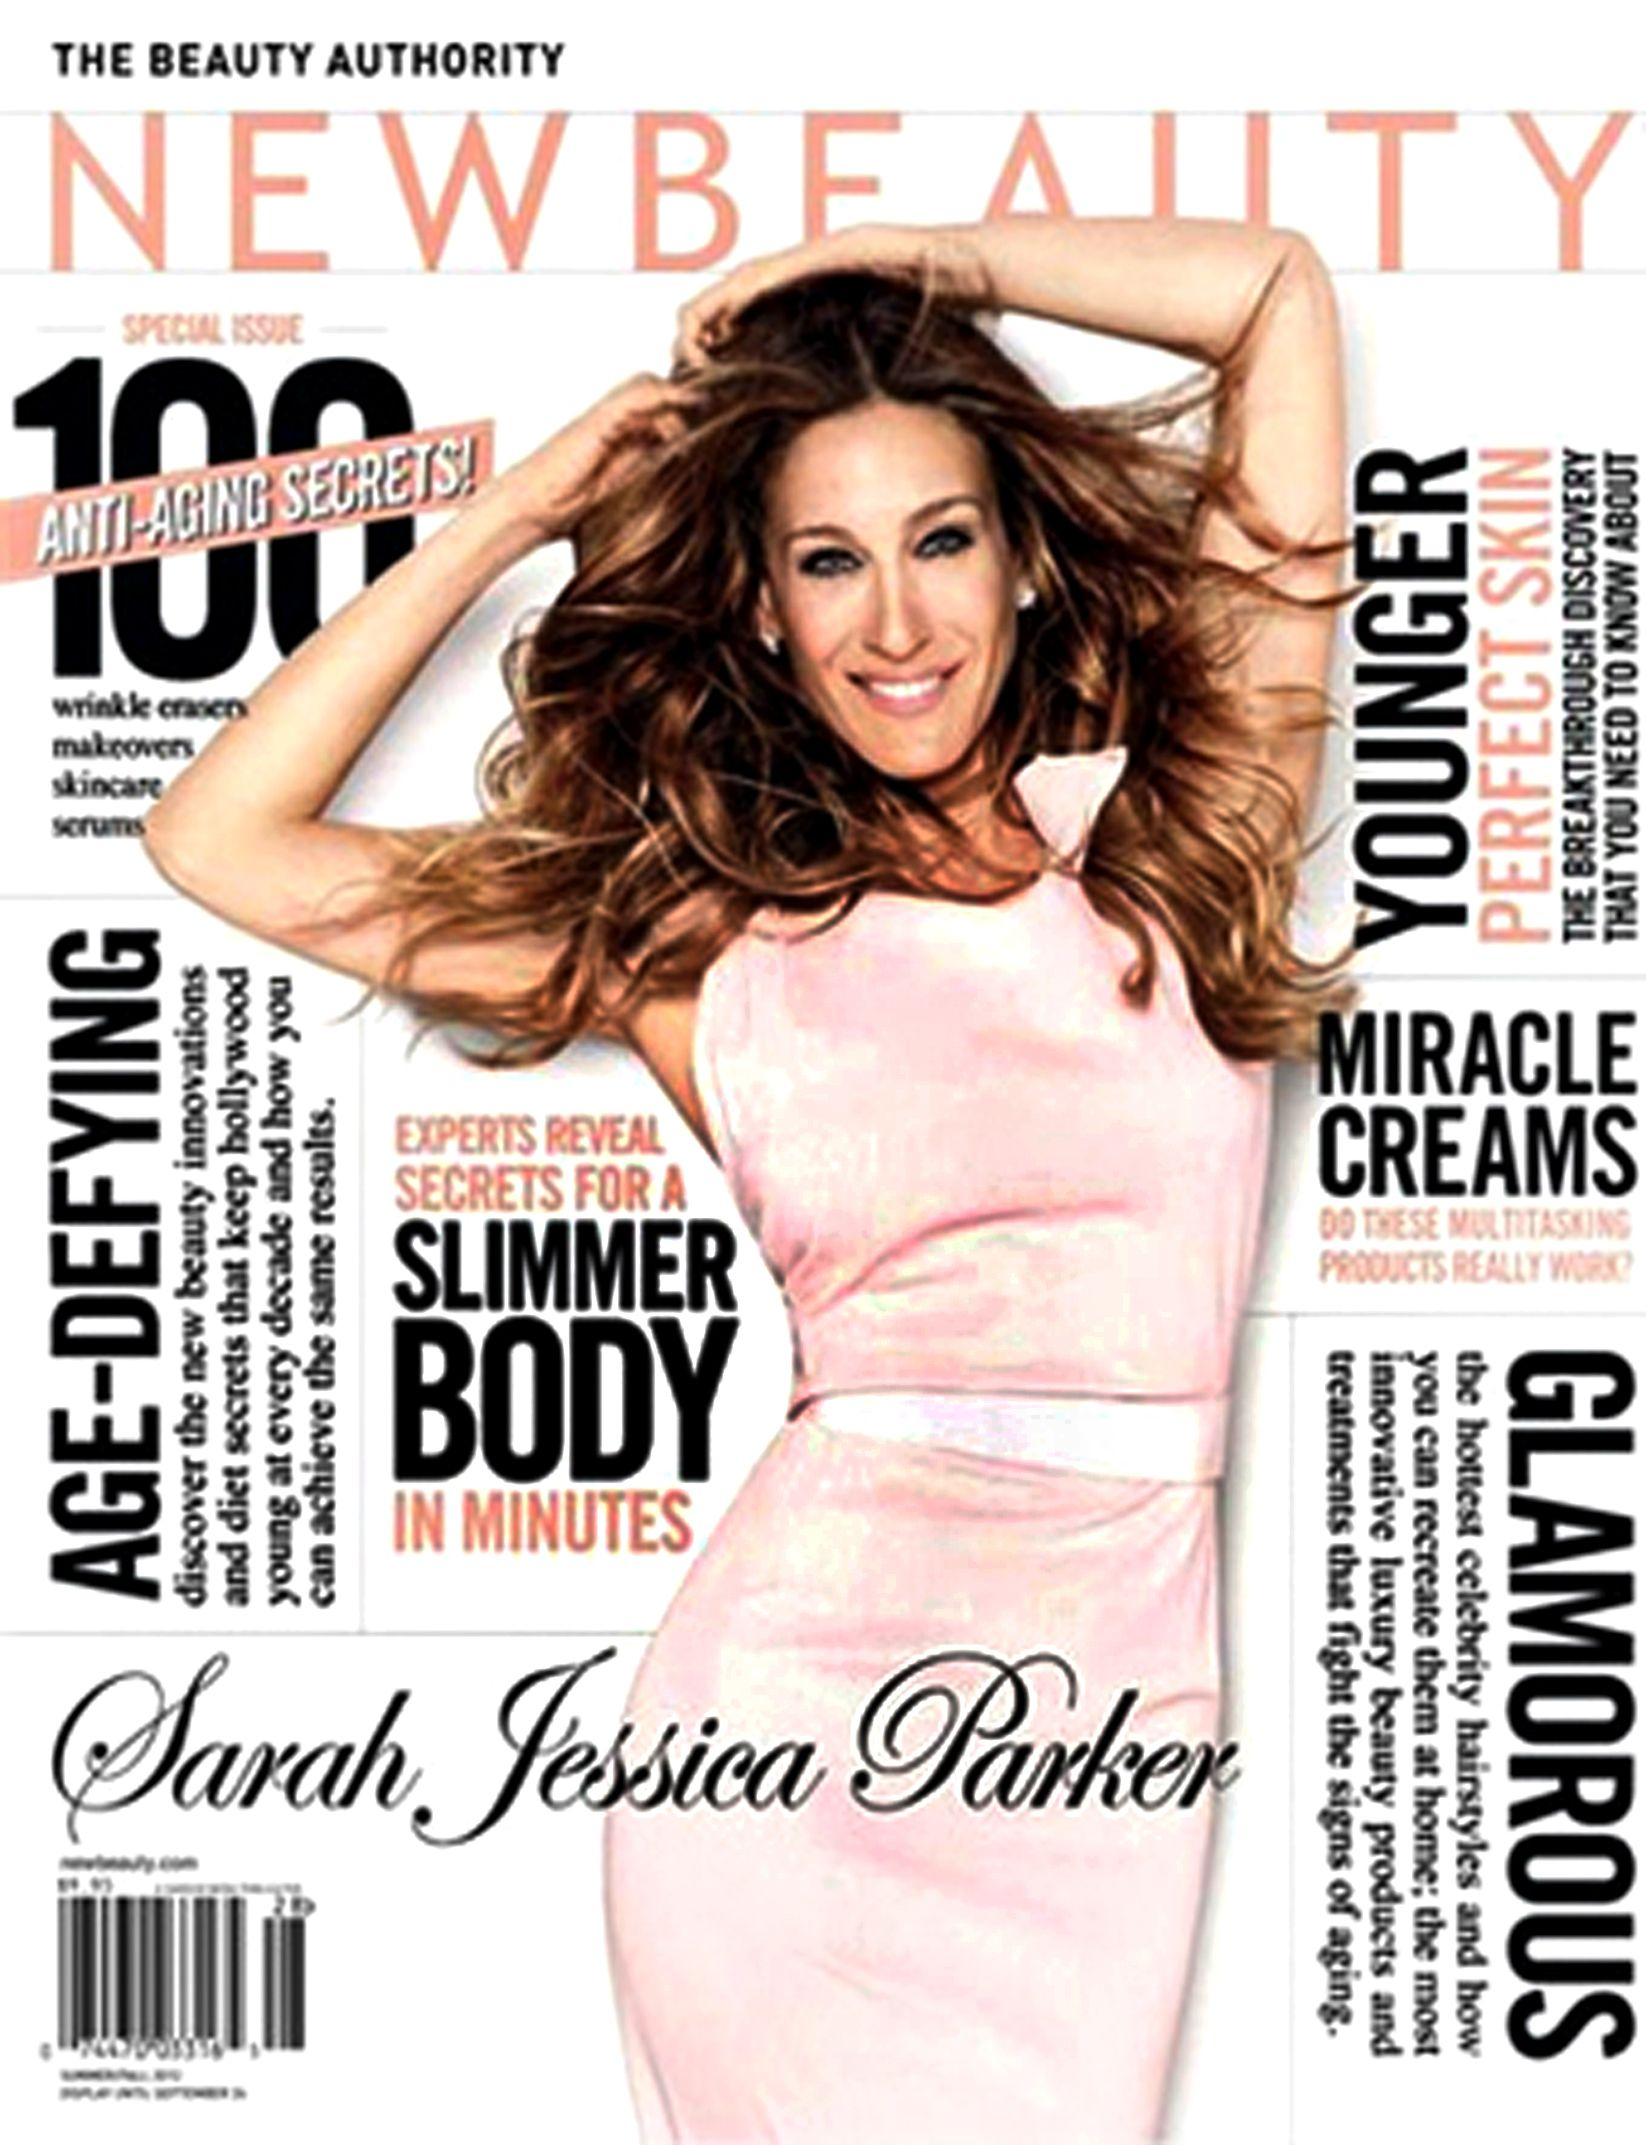 Have You Checked Out The Newest Edition Of NEW BEAUTY